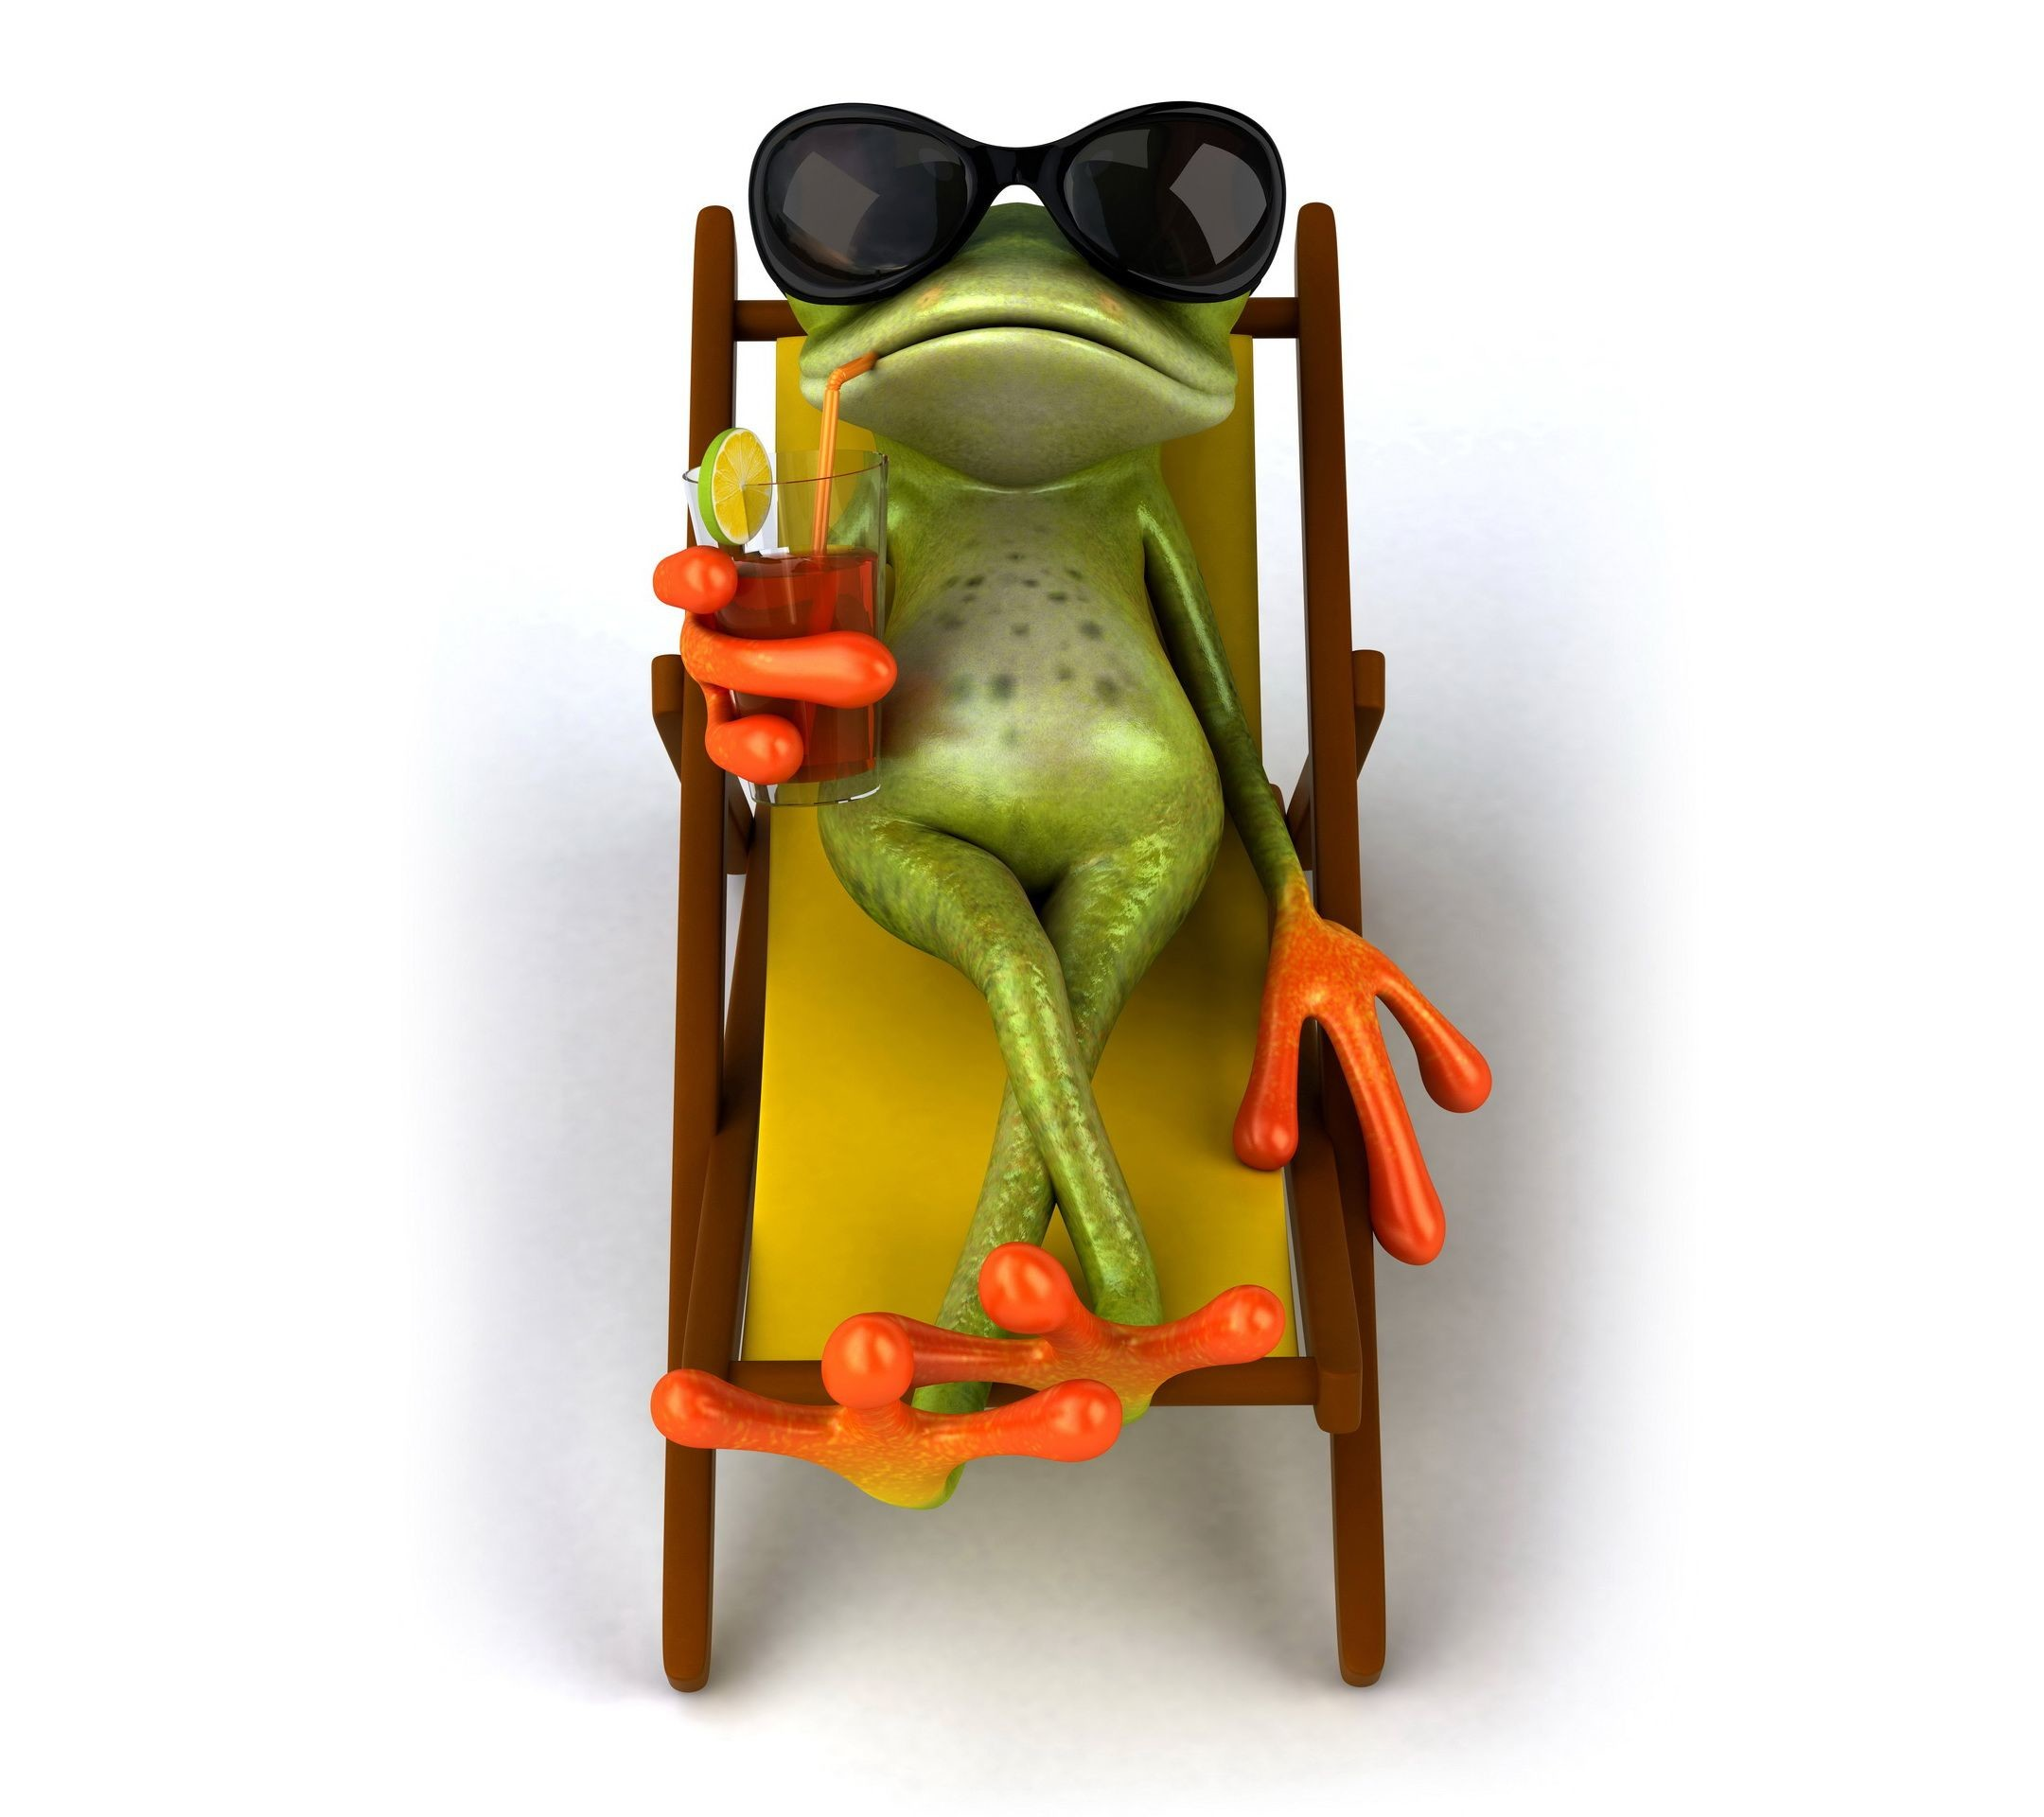 Res: 2160x1920, Relaxing Frog Desktop Background wallpapers HD free - 336454